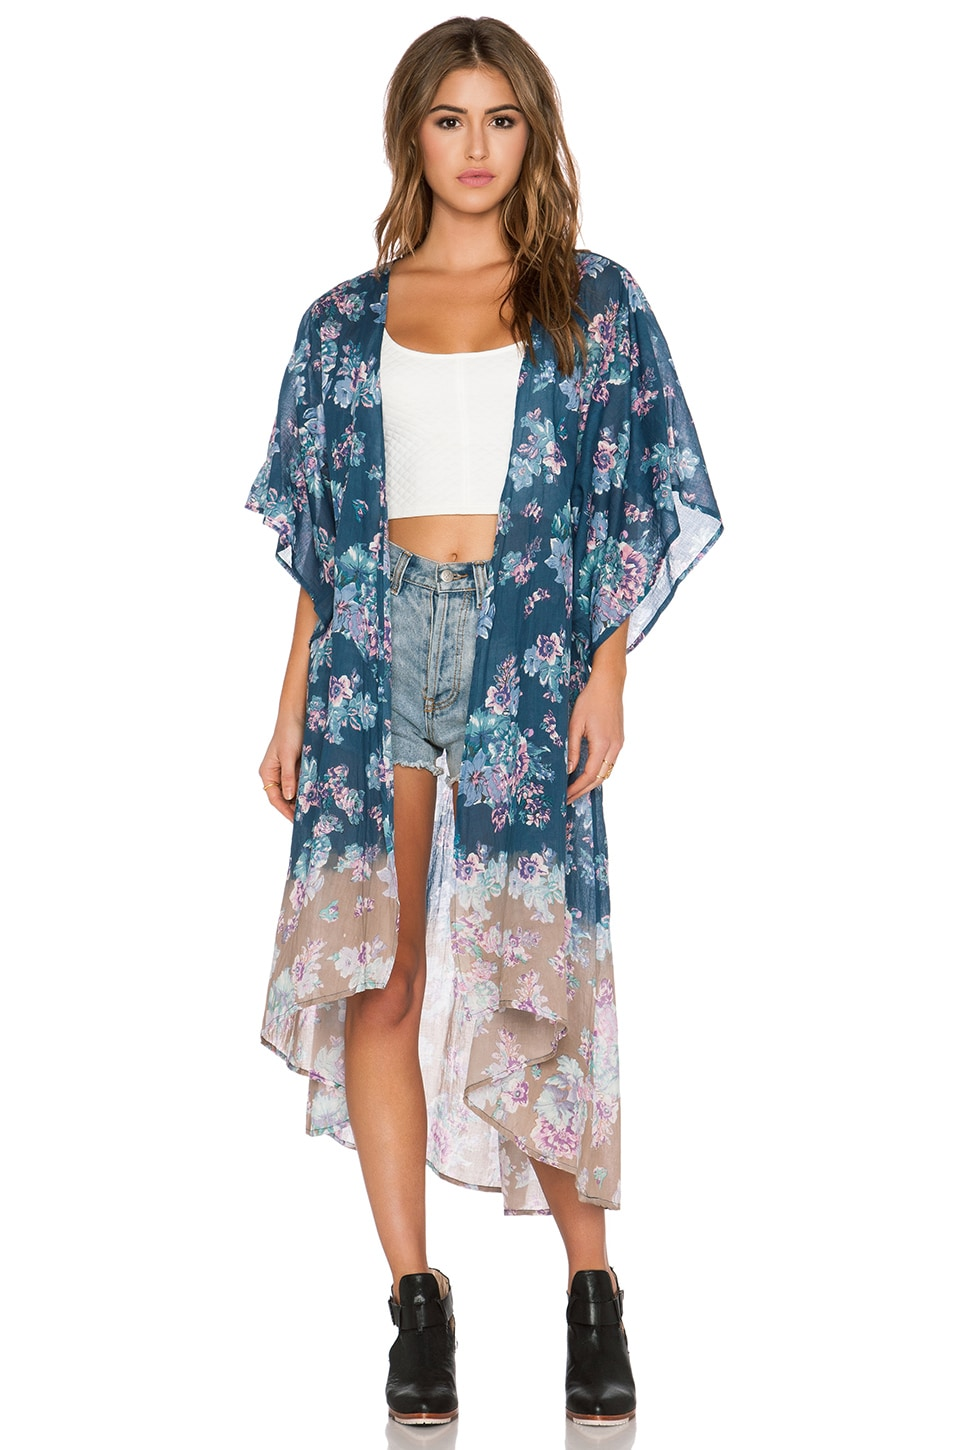 Band of Gypsies Floral Kimono in Purple Multi